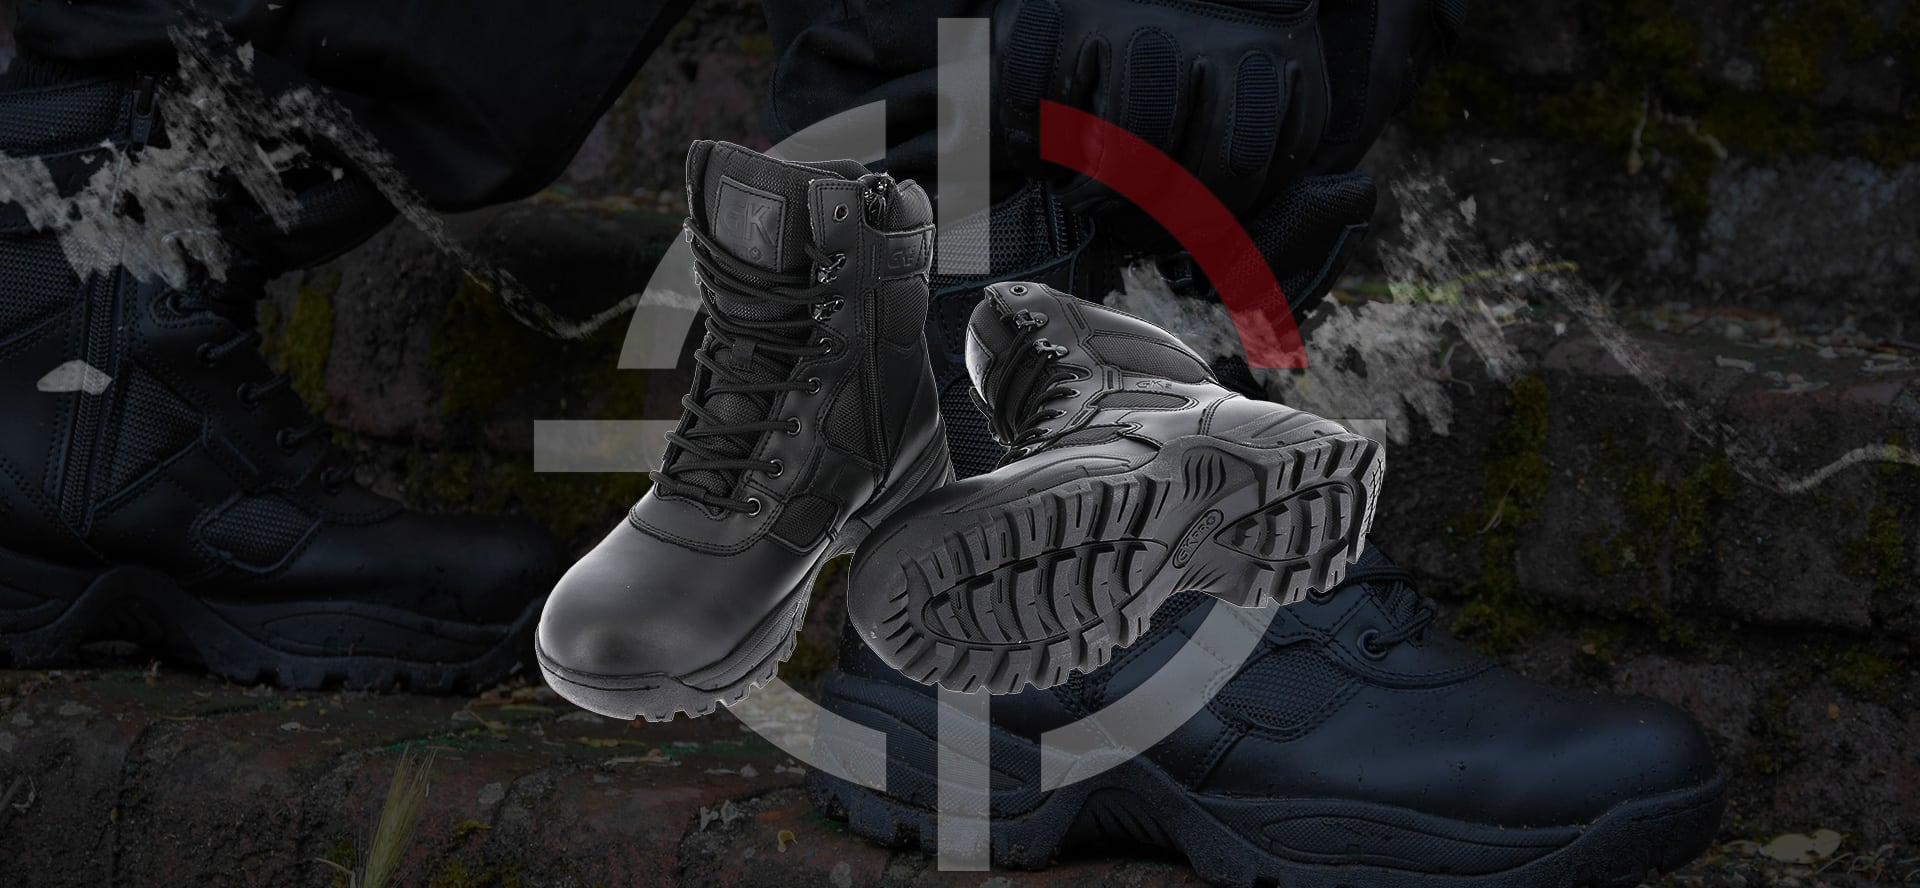 CHAUSSURES INTERVENTION GK PRO - POLICE ARMEE SECURITE